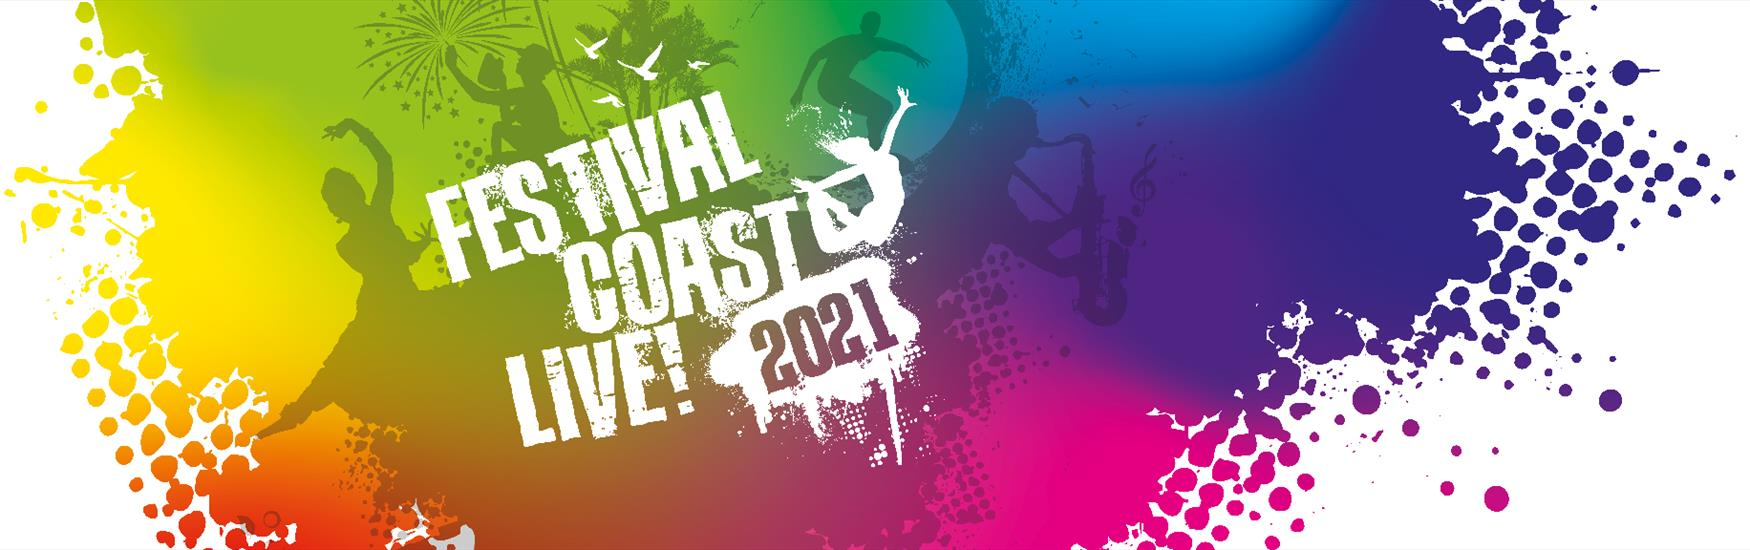 Festival Coast Live 2021 website banner with a mixture of bright colours in the background